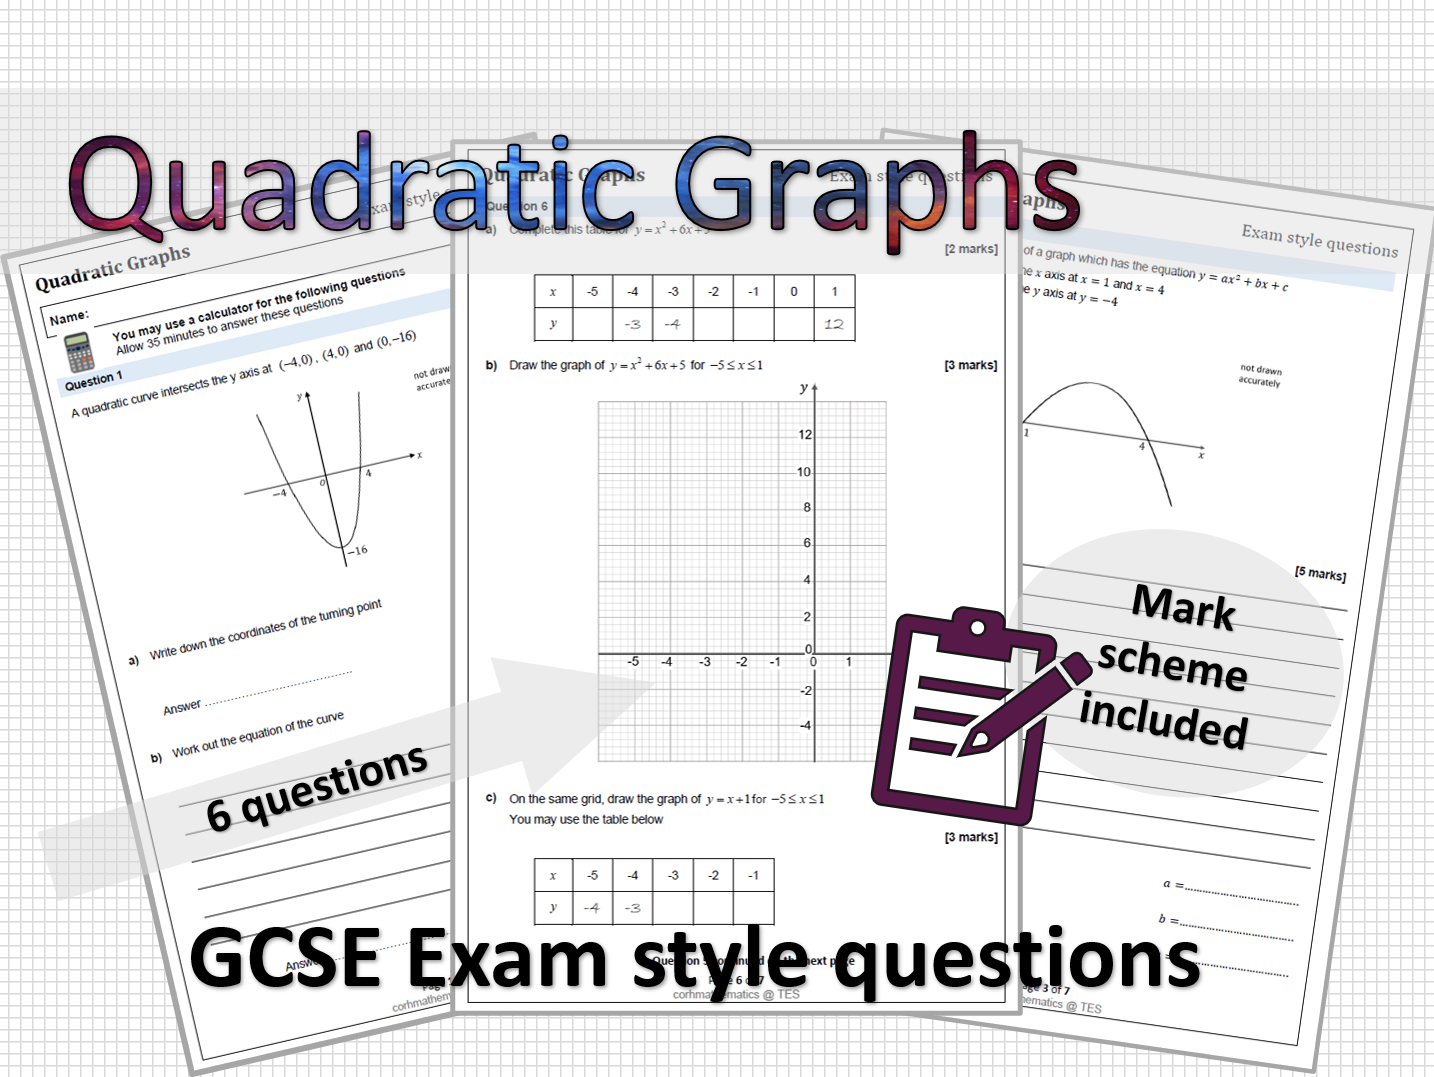 Quadratic Graphs exam style questions